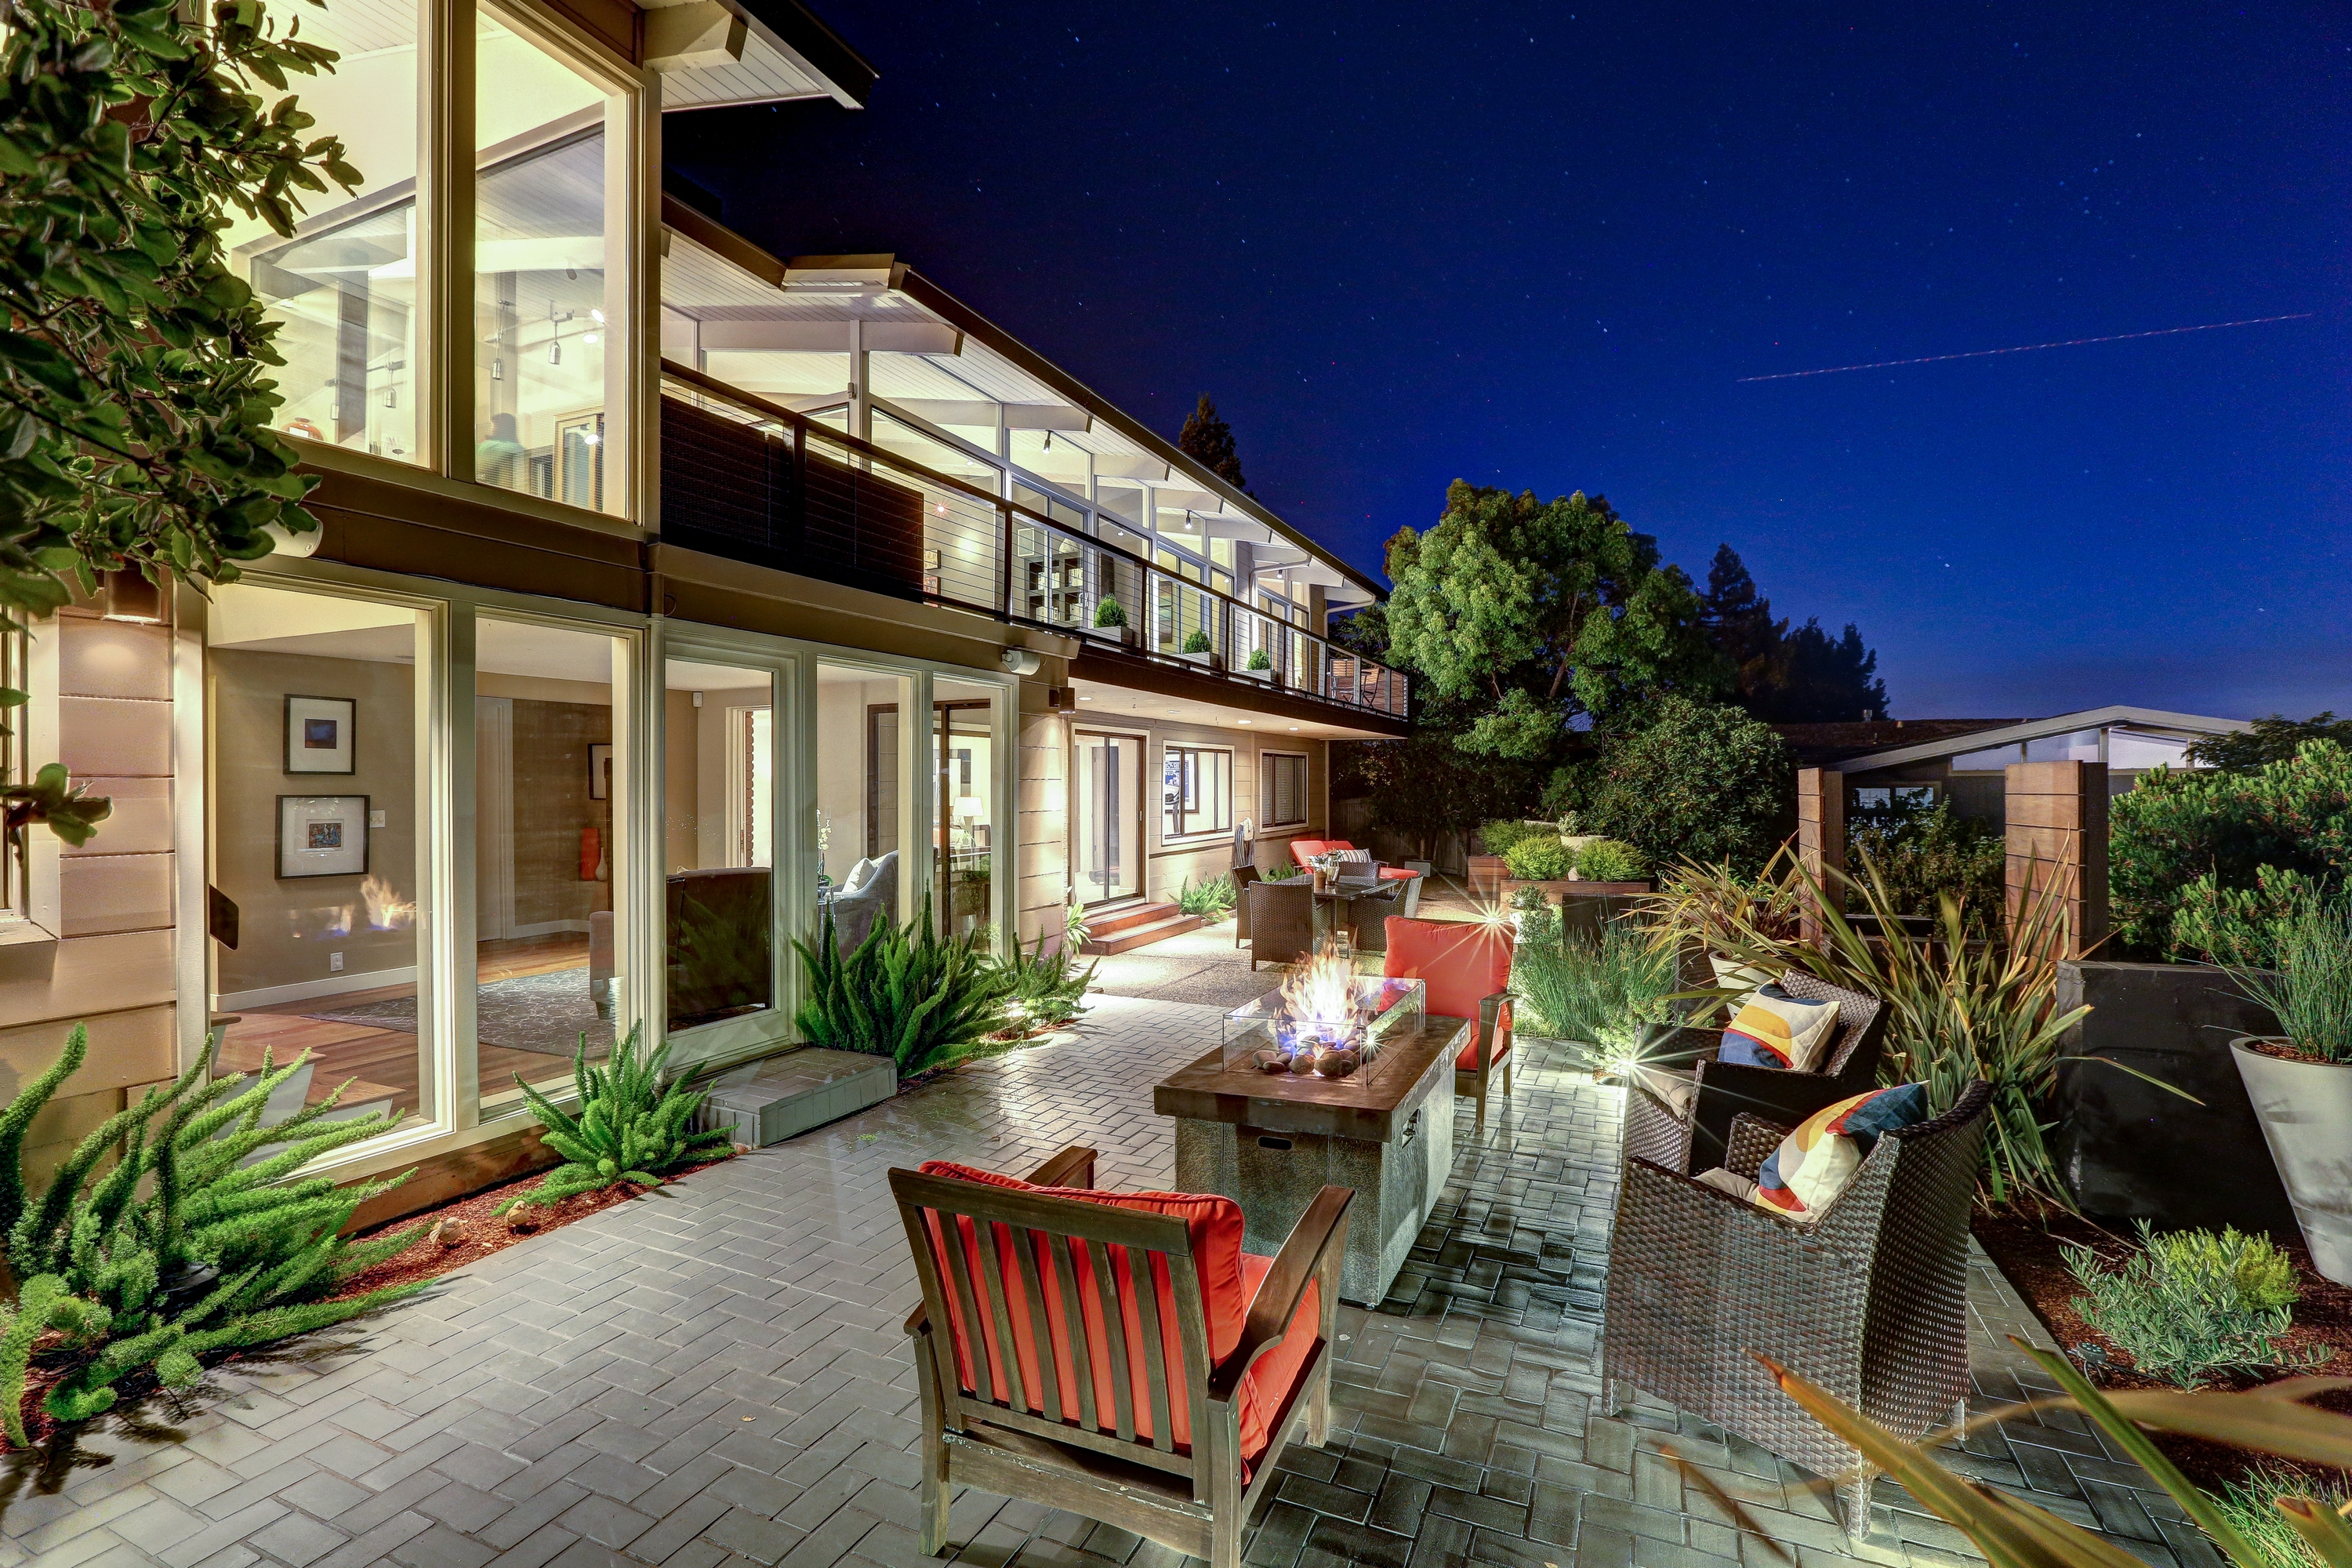 Single Family Home for Sale at Spectacular, Ultra Chic Contemporary Home 96 Oakmont Ave San Rafael, California 94901 United States